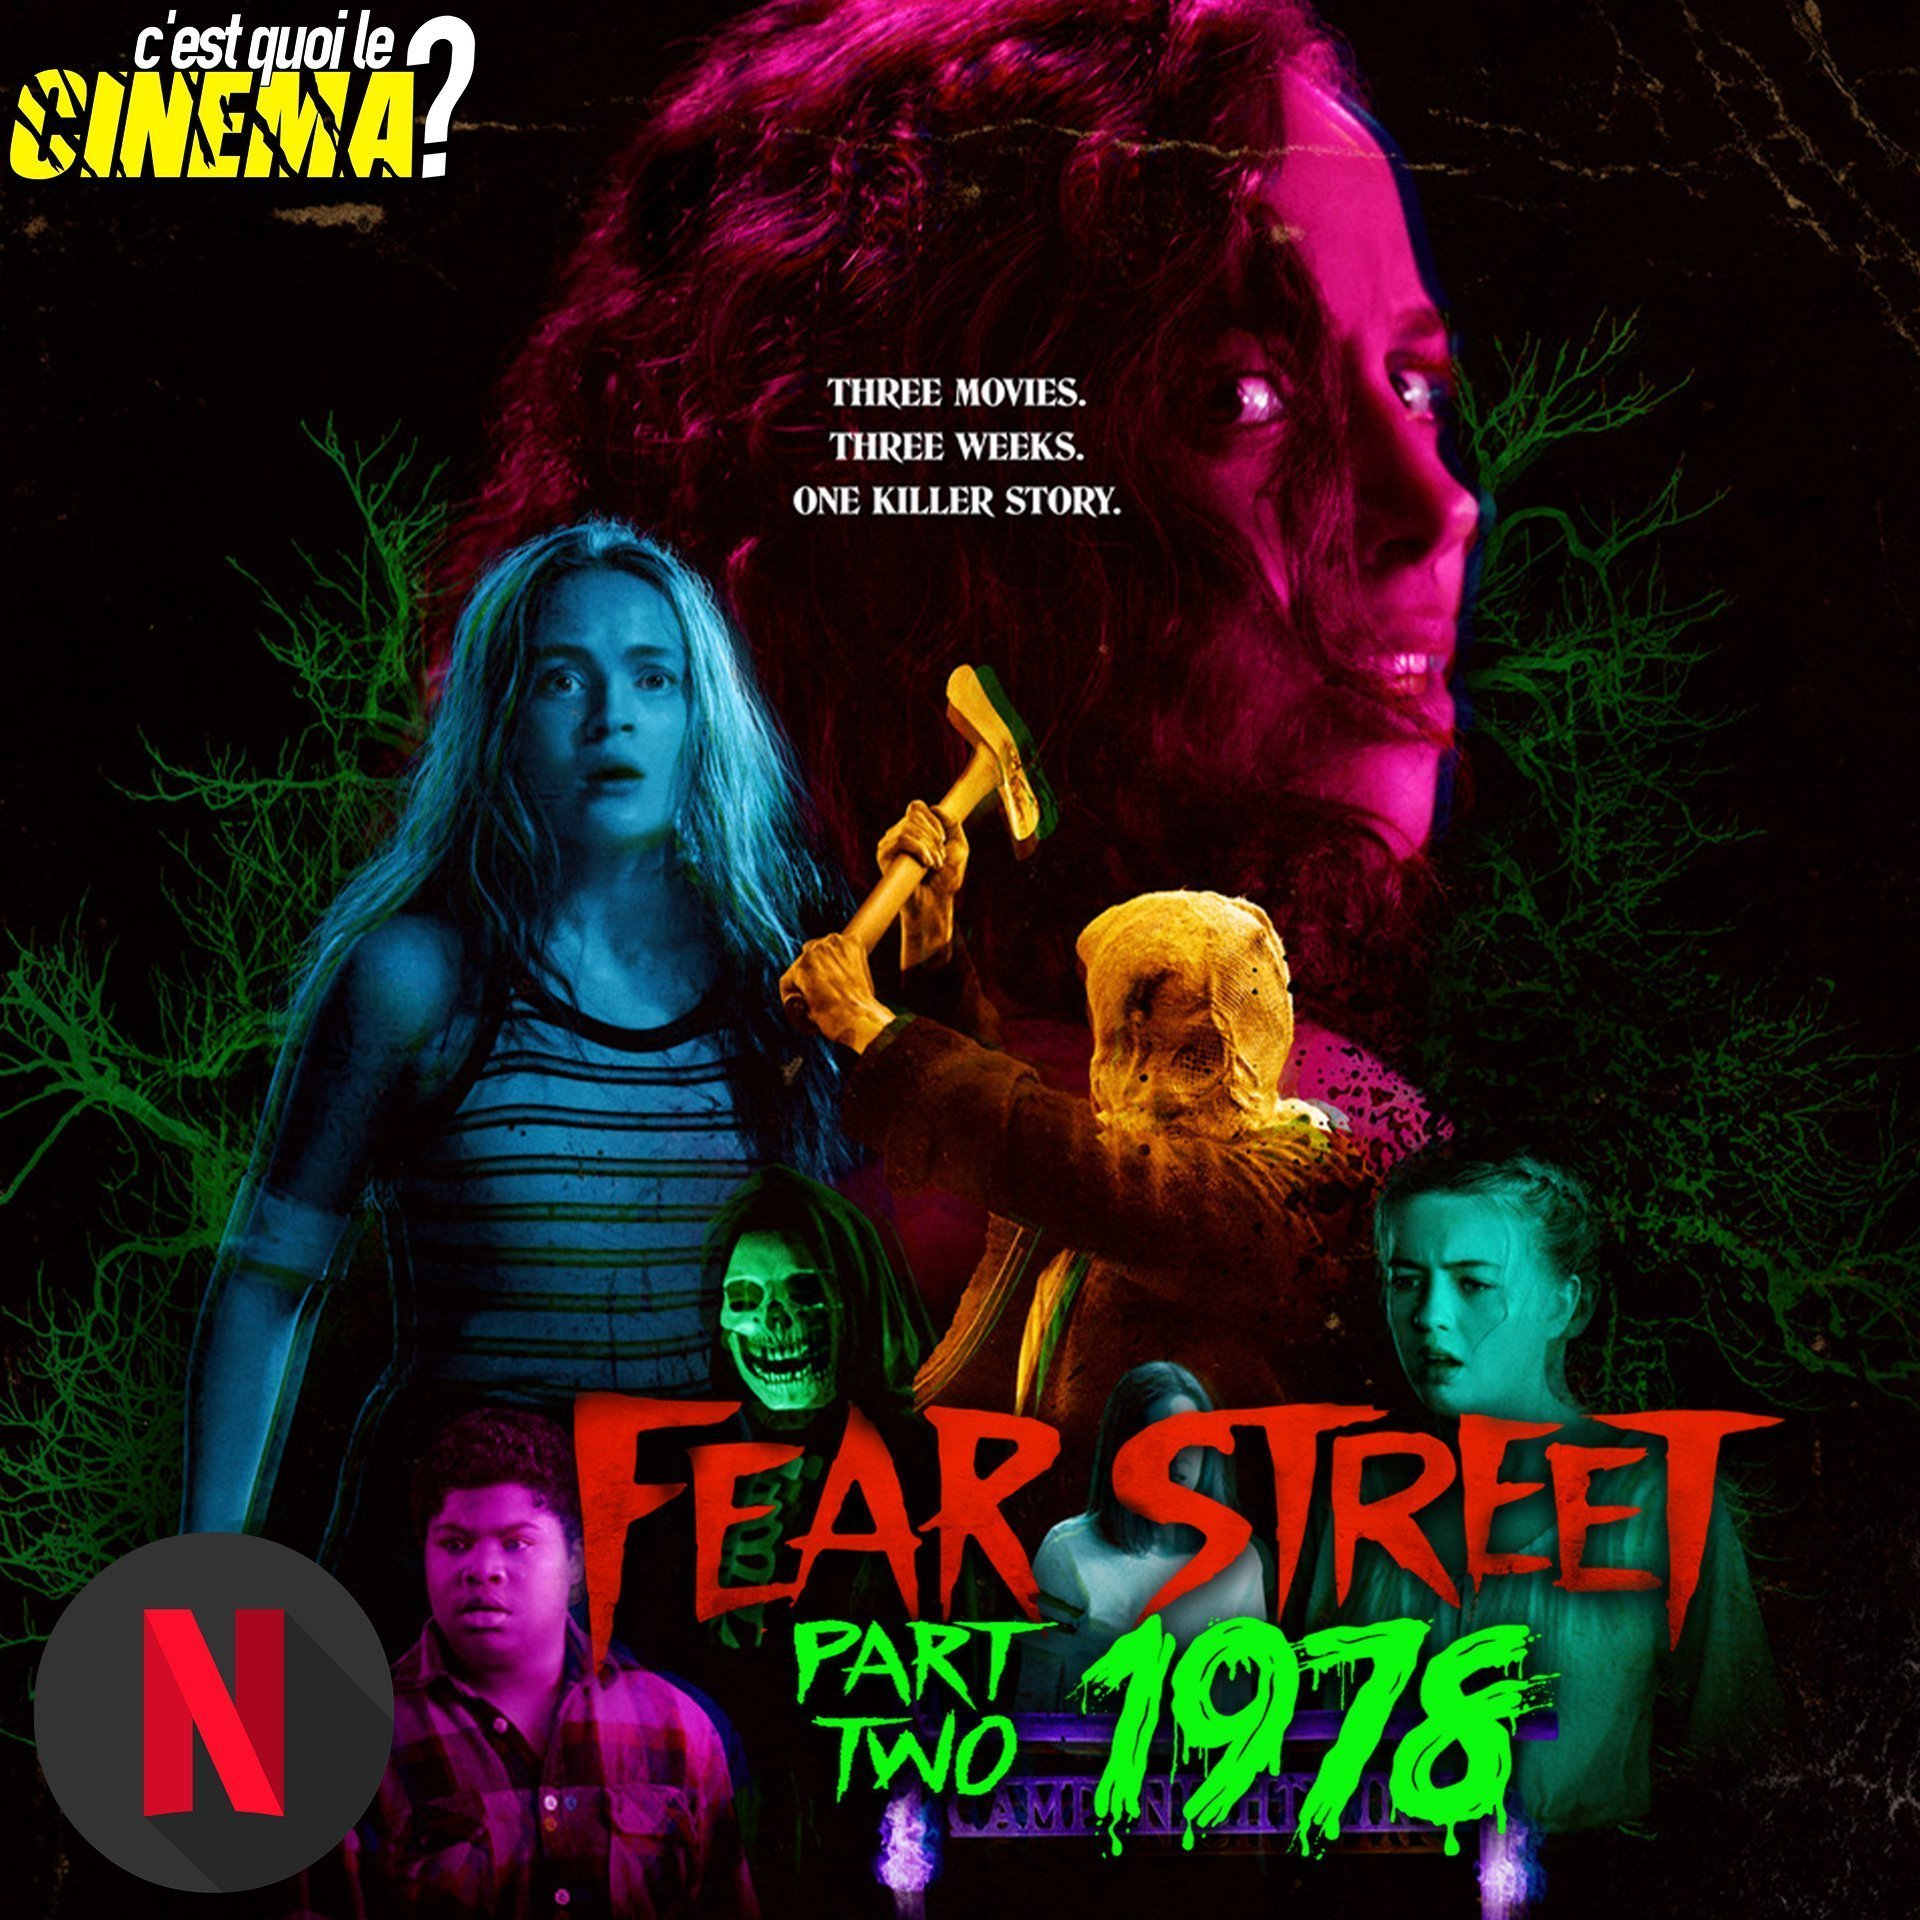 [CRITIQUE] Fear Street – Partie 2 : 1978 – Back to 13th Friday 1970